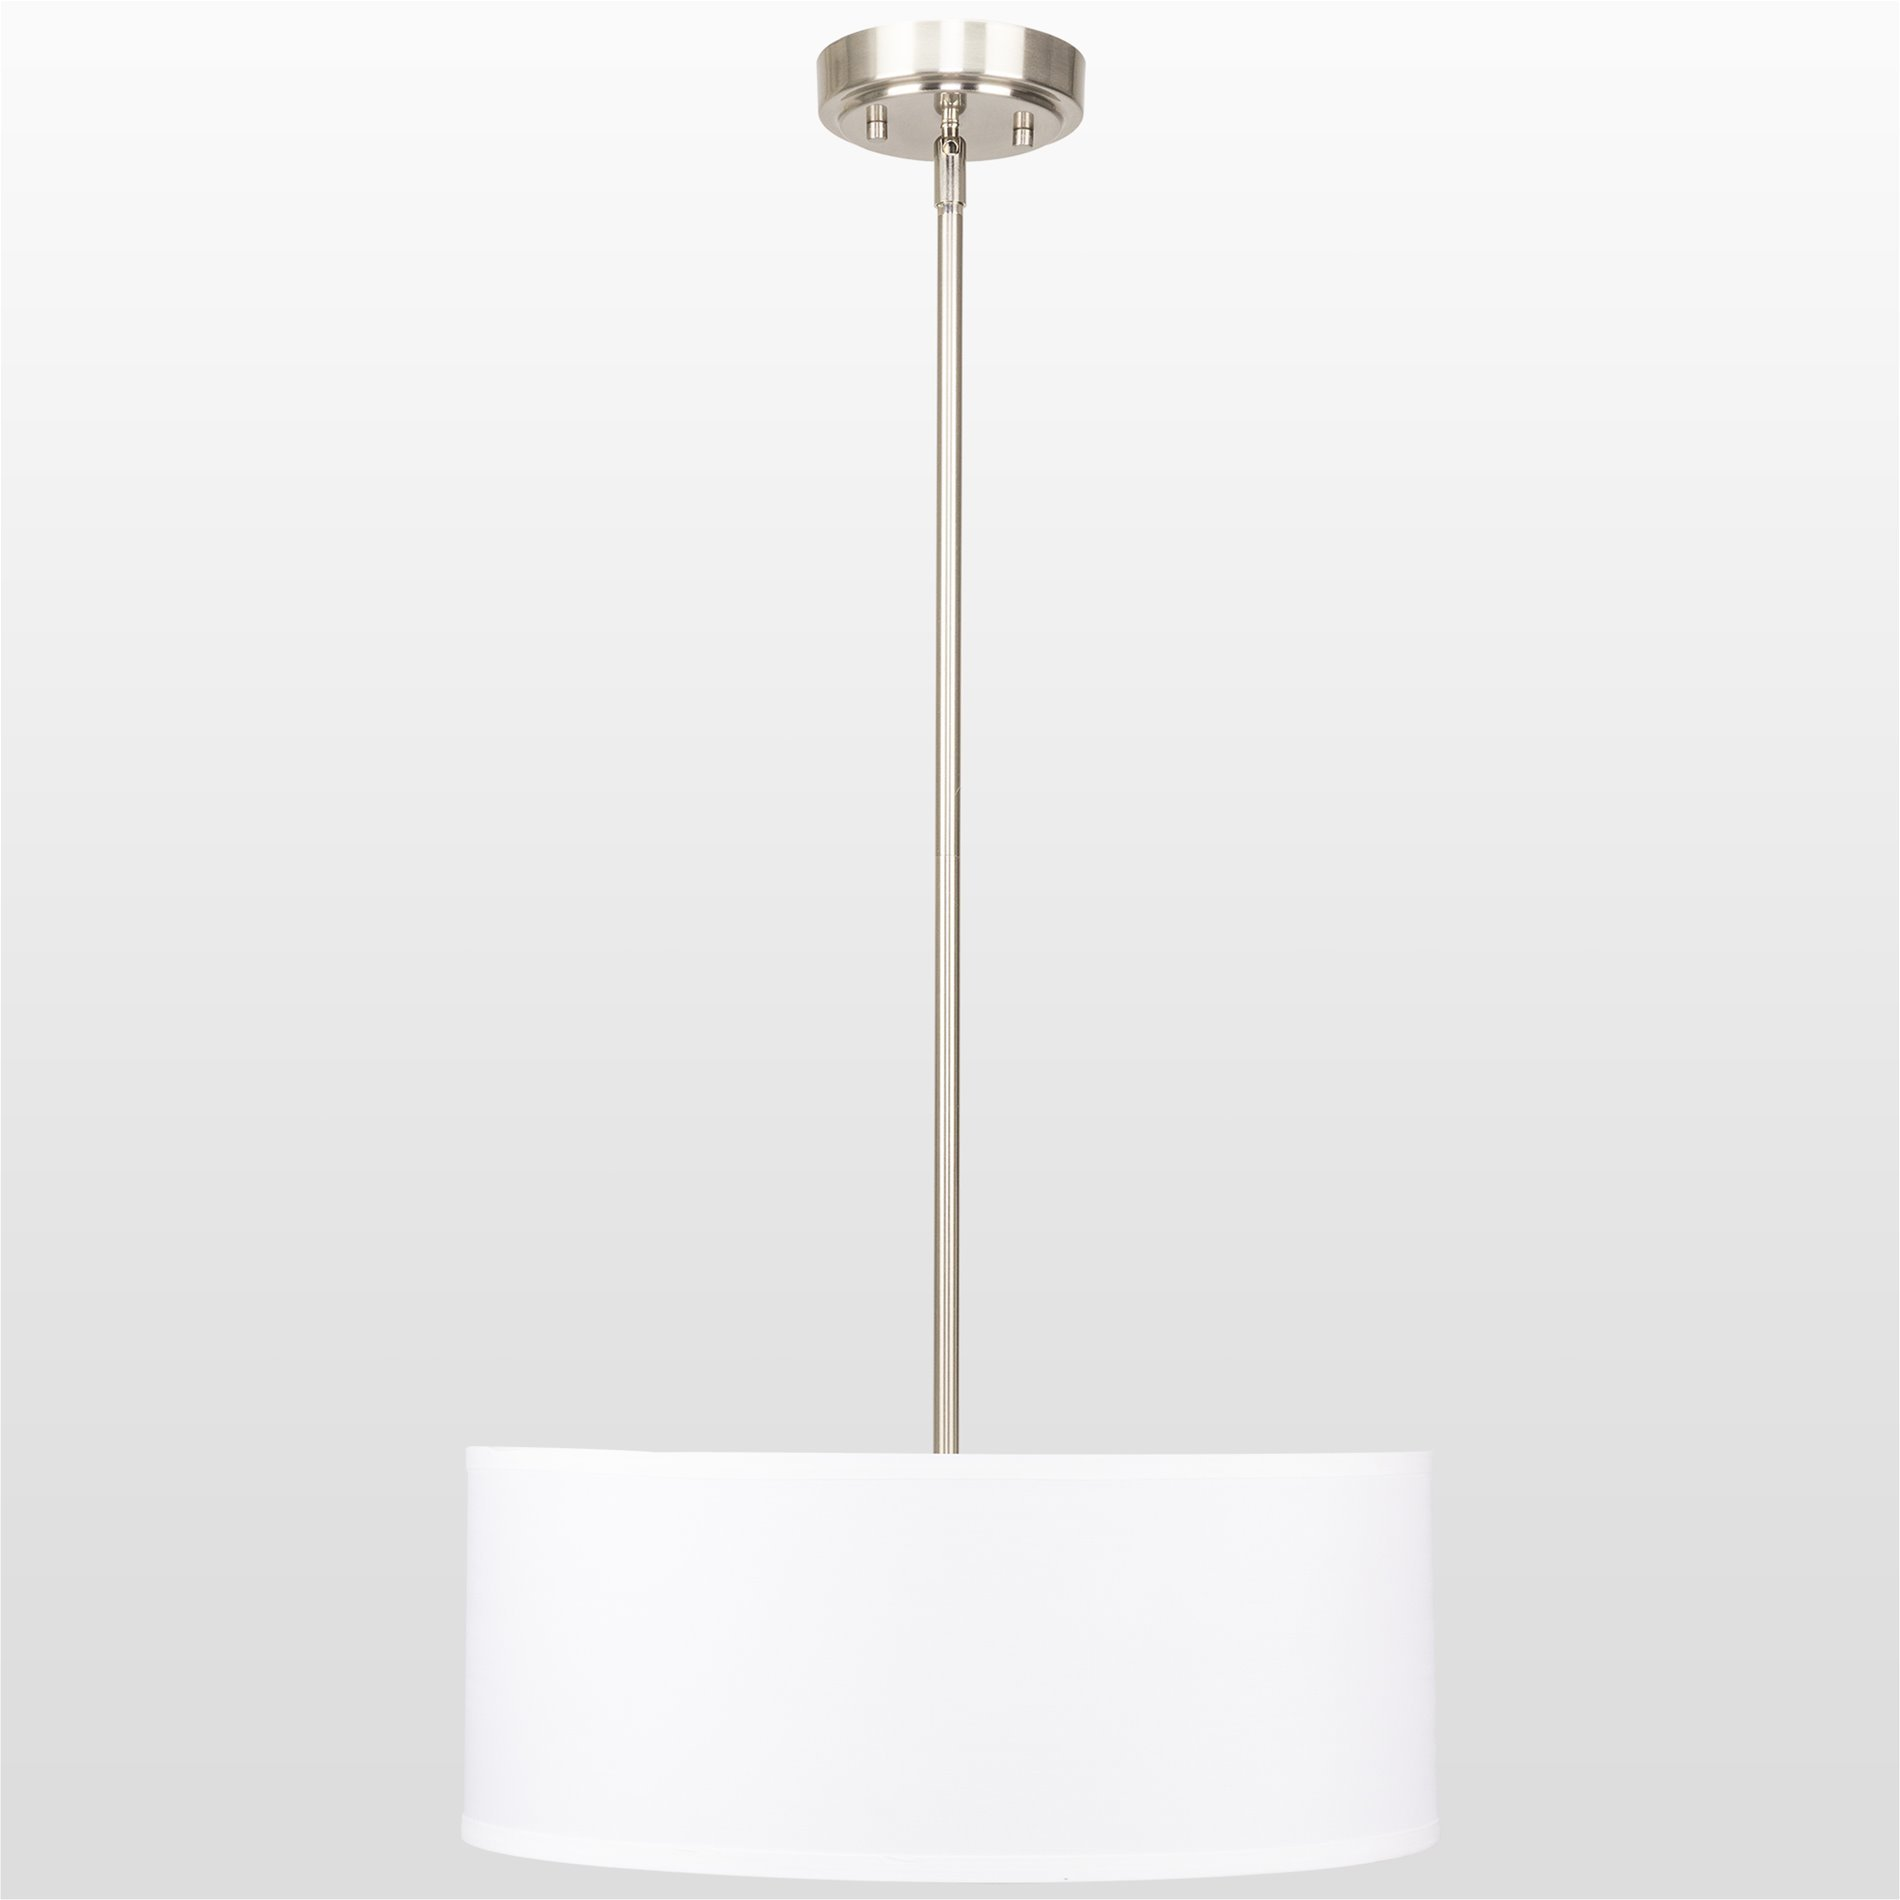 Kira Home Nolan 18'' Classic Drum Chandelier, Stem-Hung Adjustable Height, White Fabric Shade + Glass Diffuser, Brushed Nickel Finish